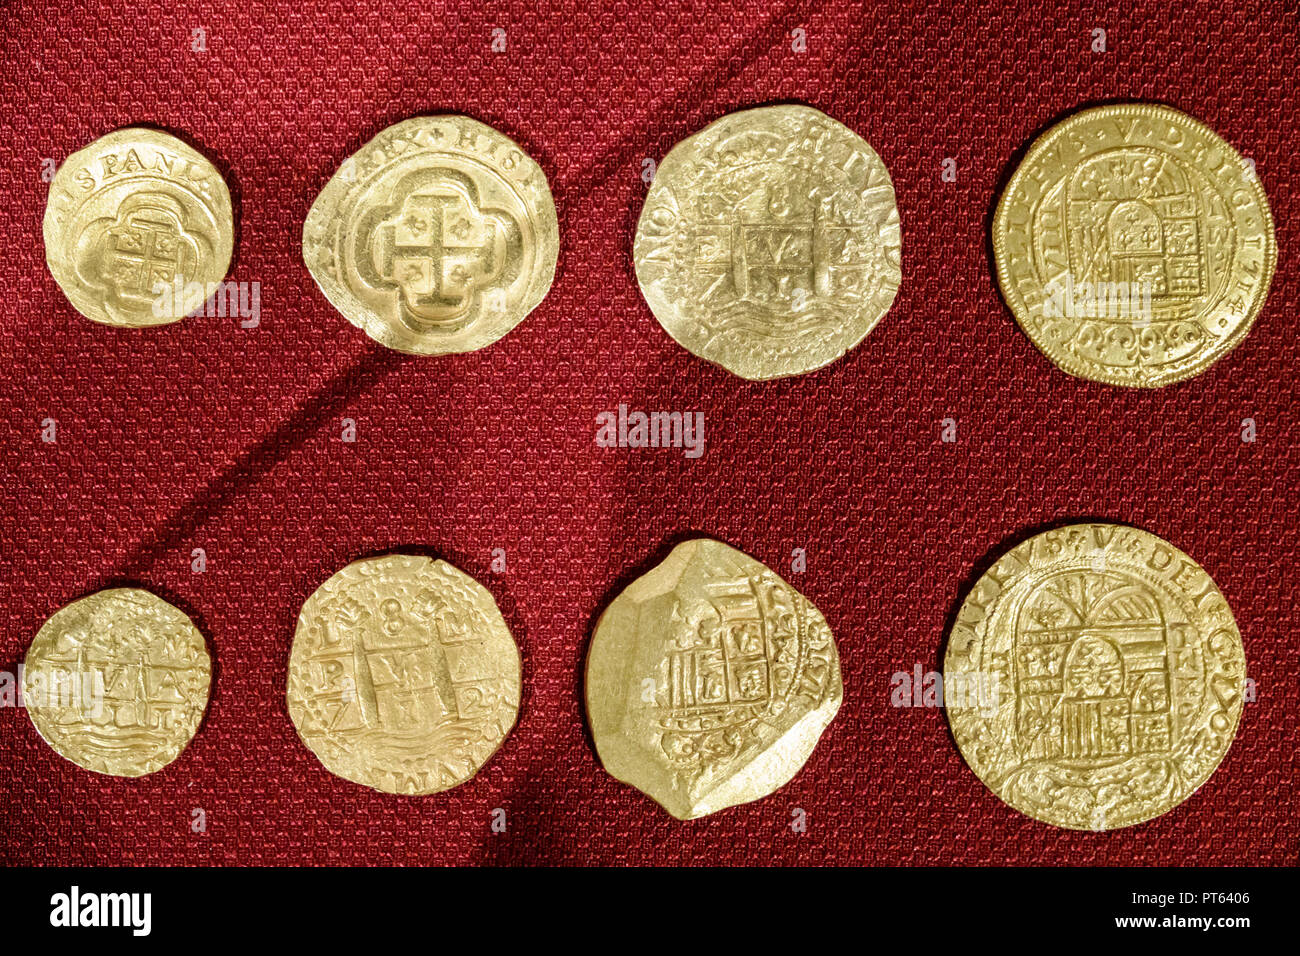 Tampa Florida Tampa Bay History Center centre inside collection exhibits Spanish gold coins shipwreck treasure - Stock Image